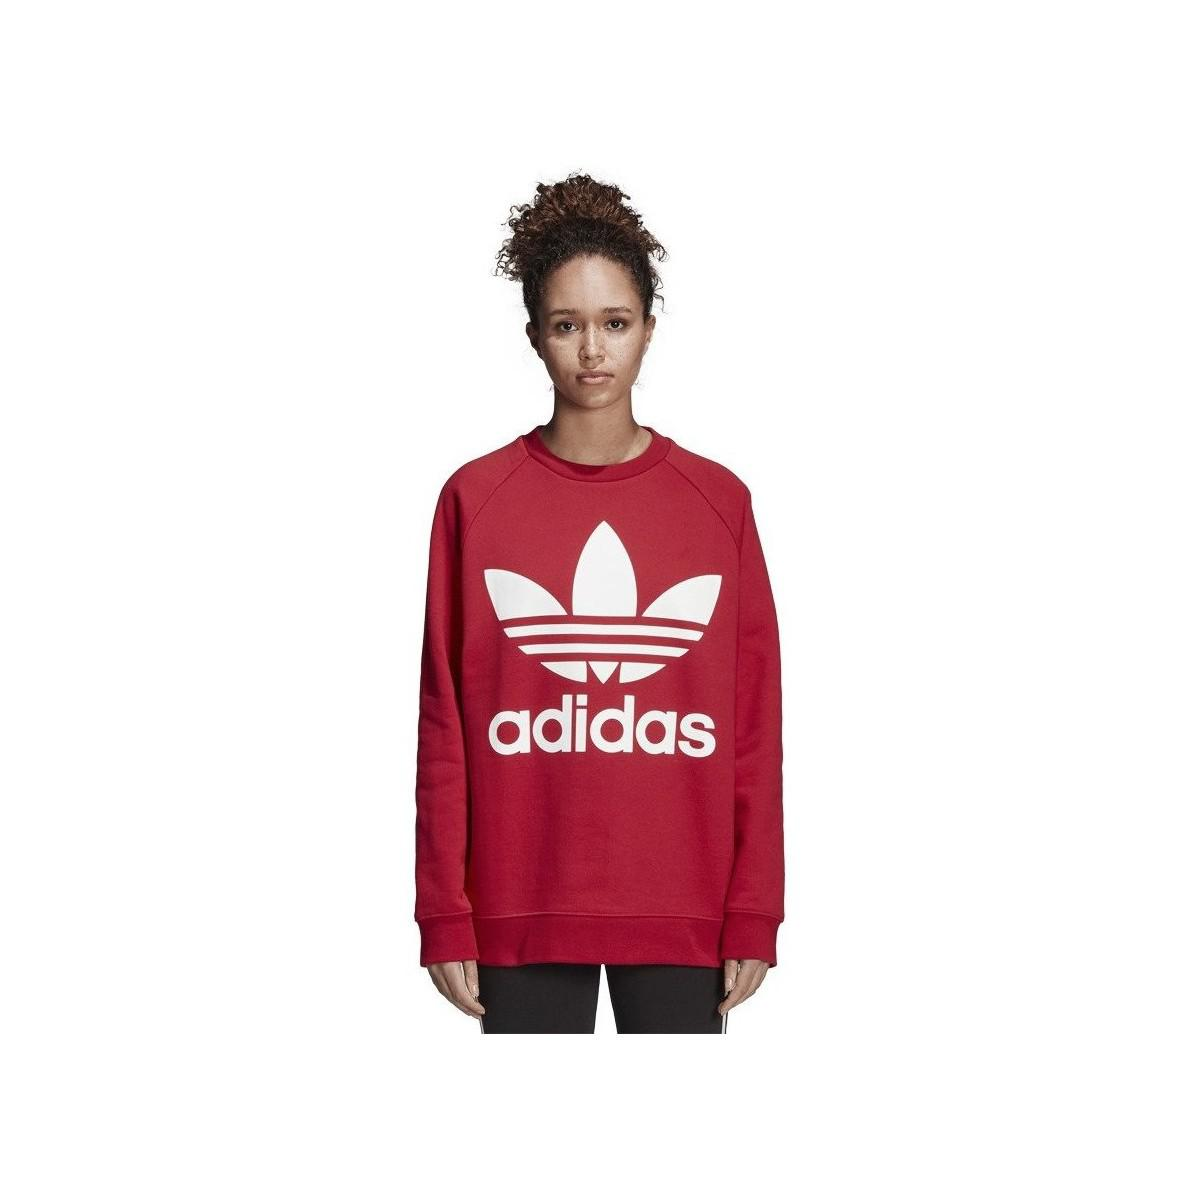 6e272186 adidas Originals Oversized Sweat Dh3140 Women's Sweatshirt In Red in ...